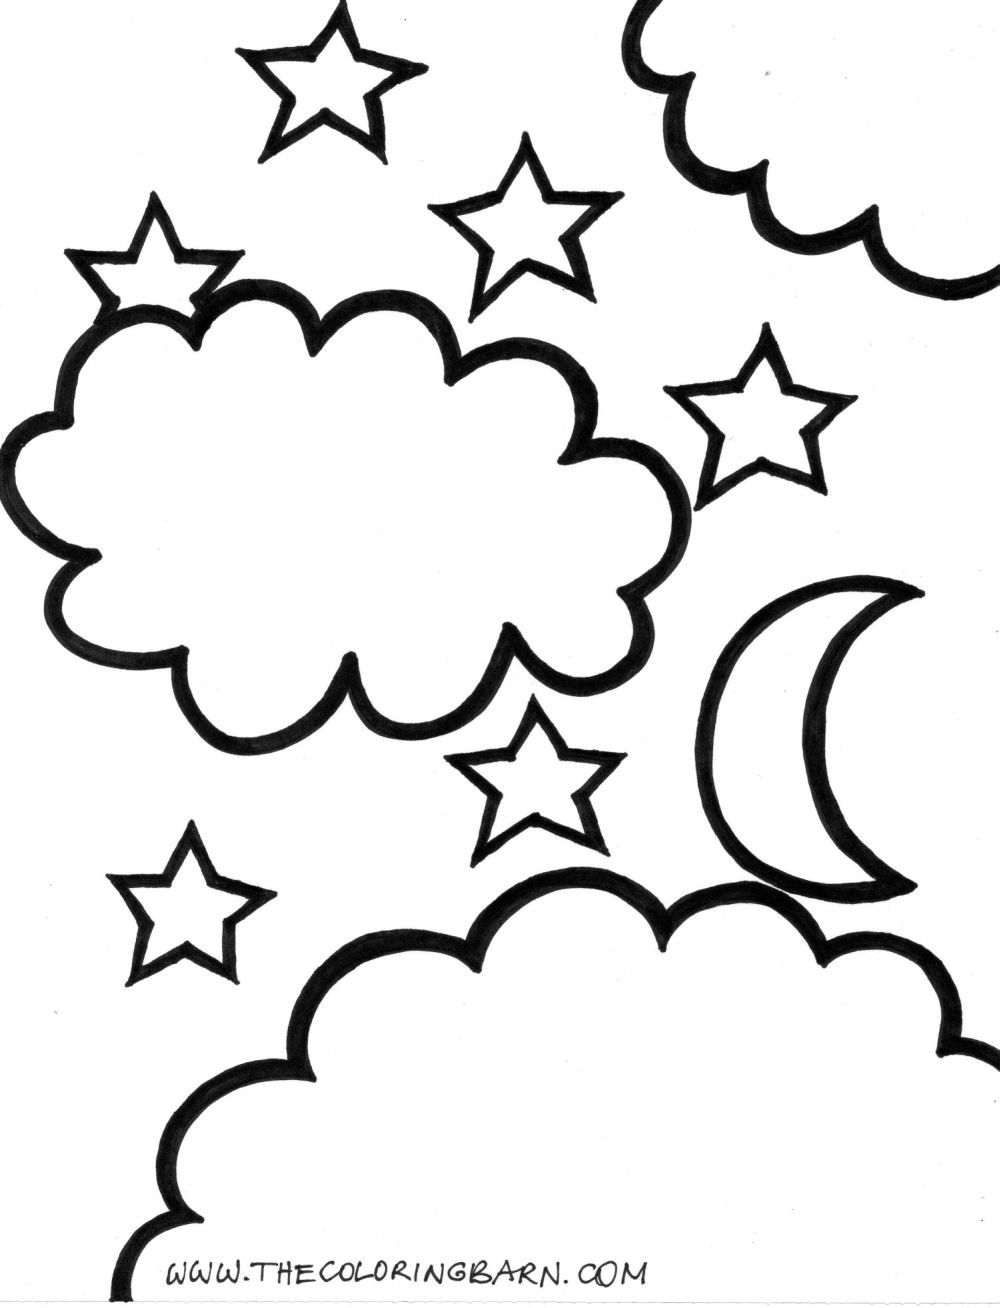 Star Coloring Pages Star Coloring Pages Moon Coloring Pages Coloring Pages